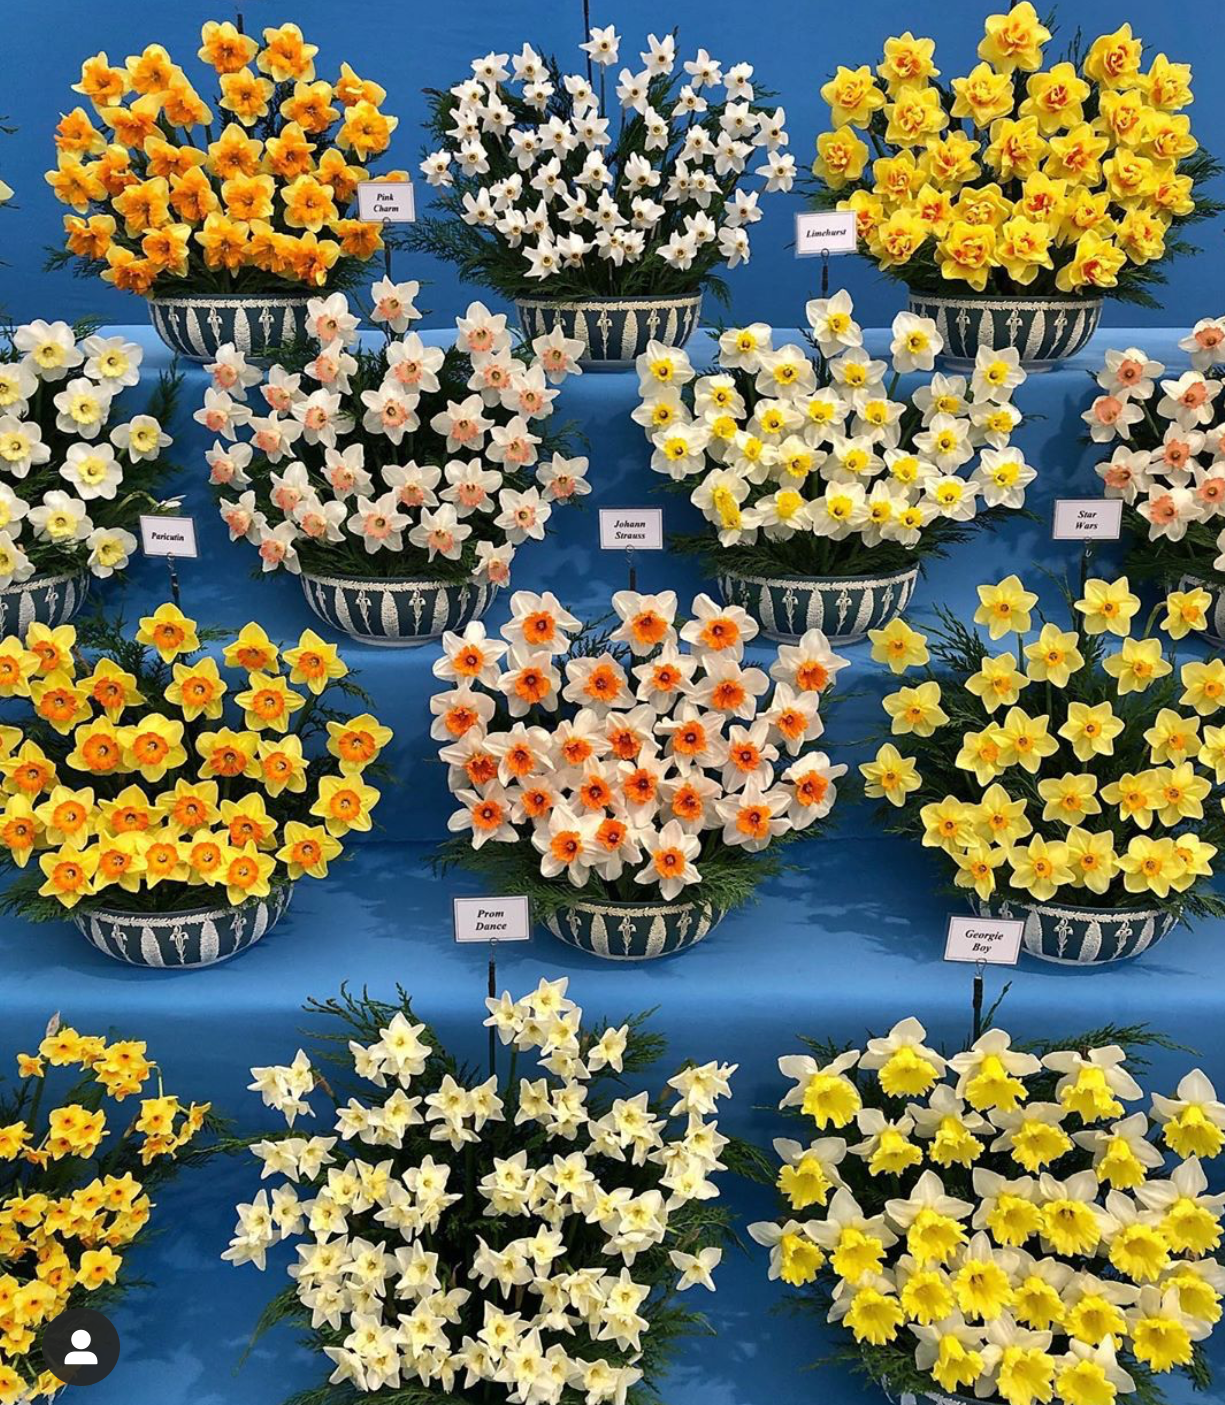 Daffodils at Chelsea Flower Show